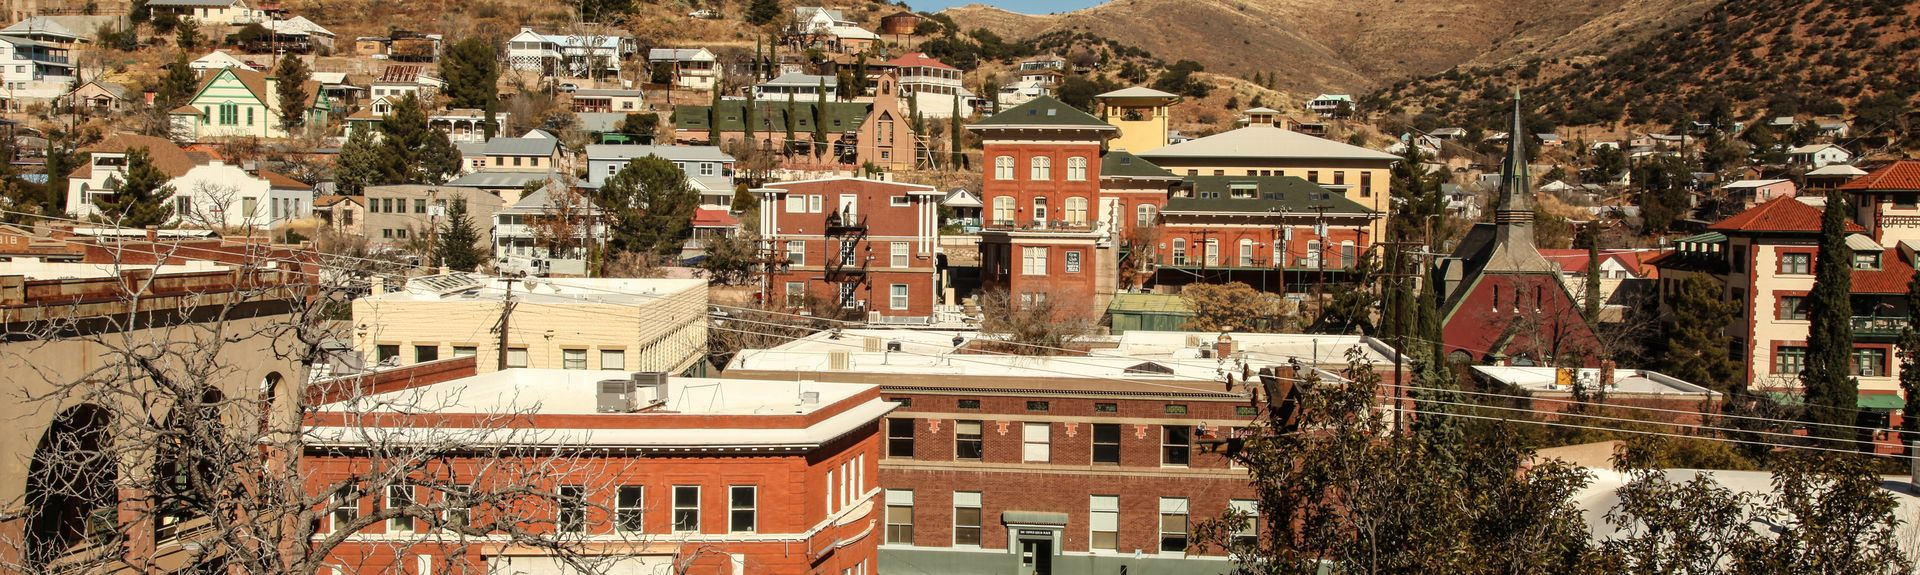 Bisbee, Arizona, United States of America